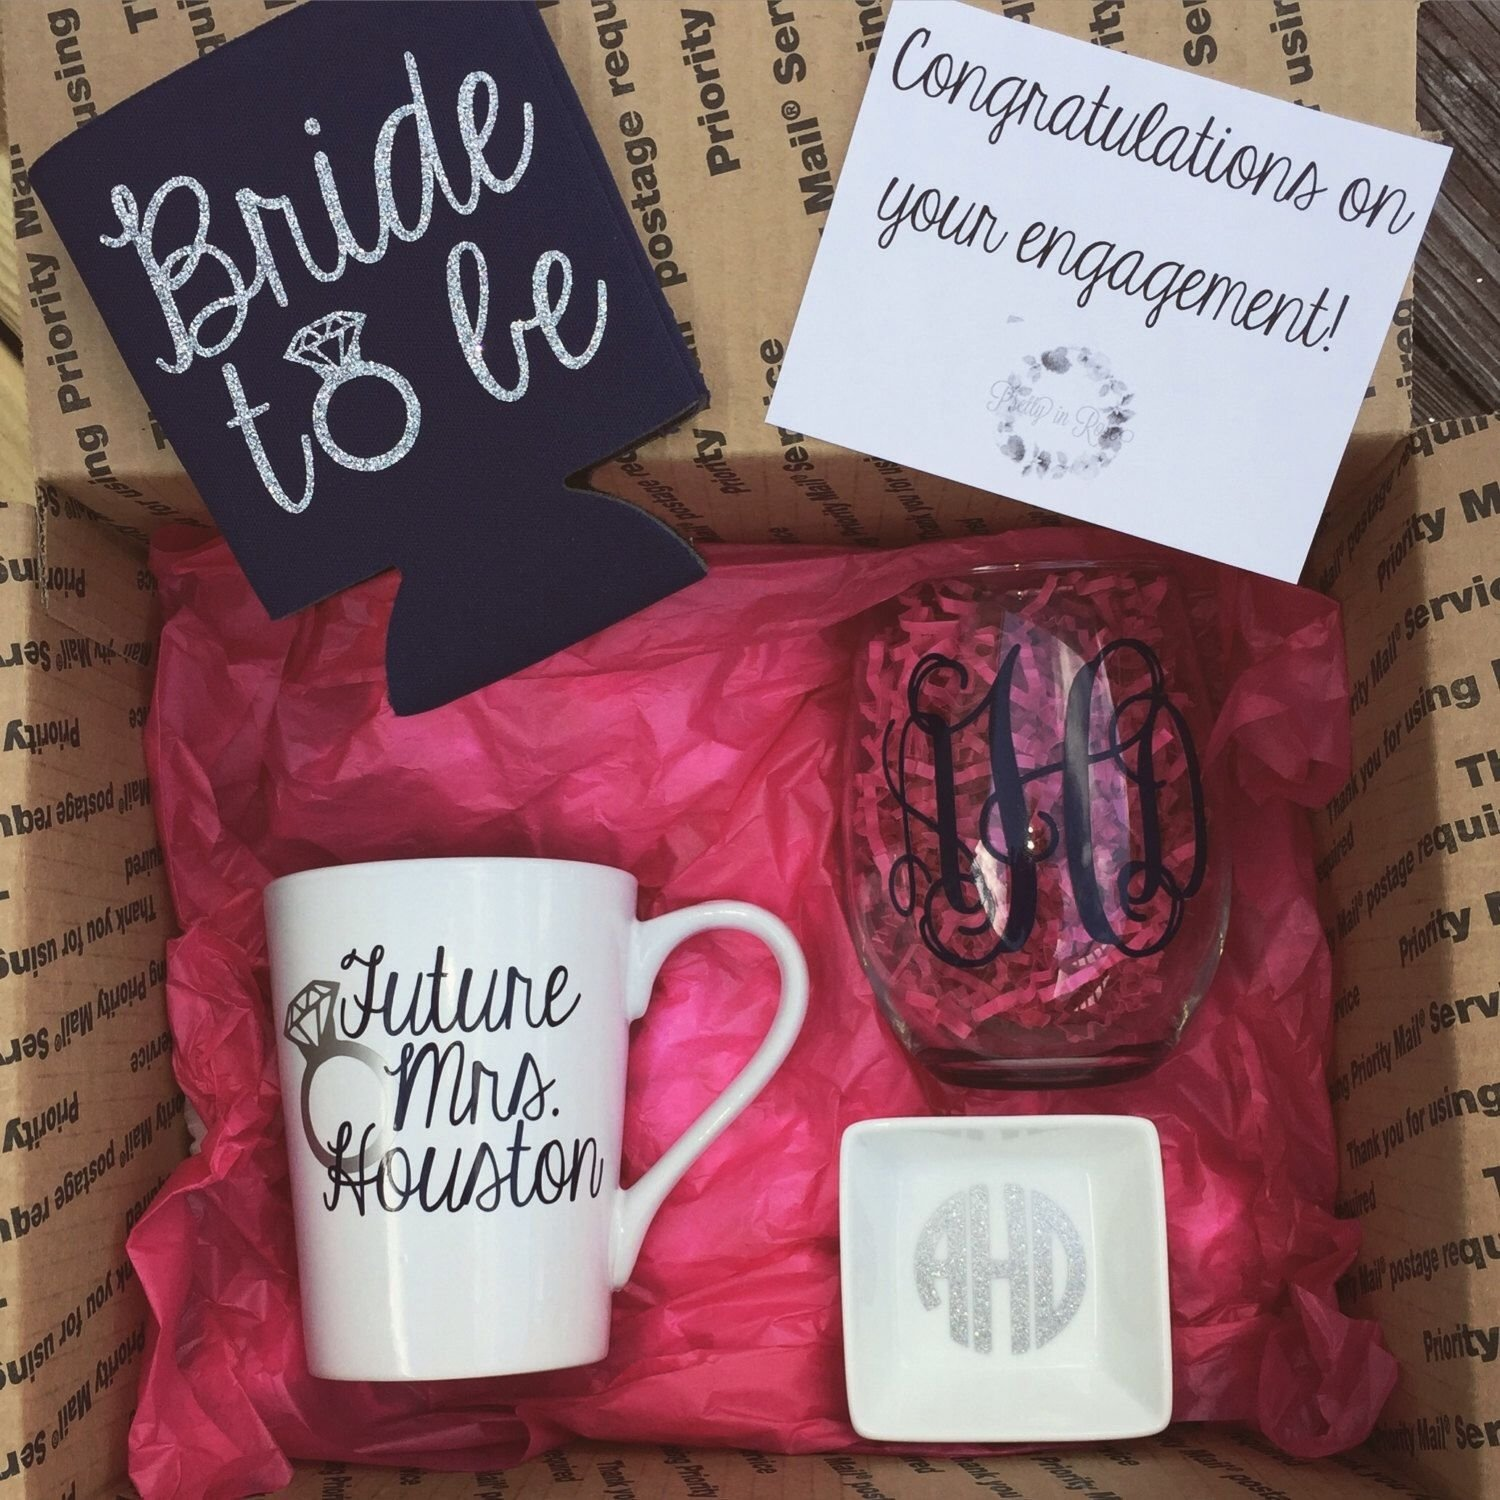 10 Most Recommended Gift Ideas For Bride To Be engagement box gift congratulations on your engagement future 2021